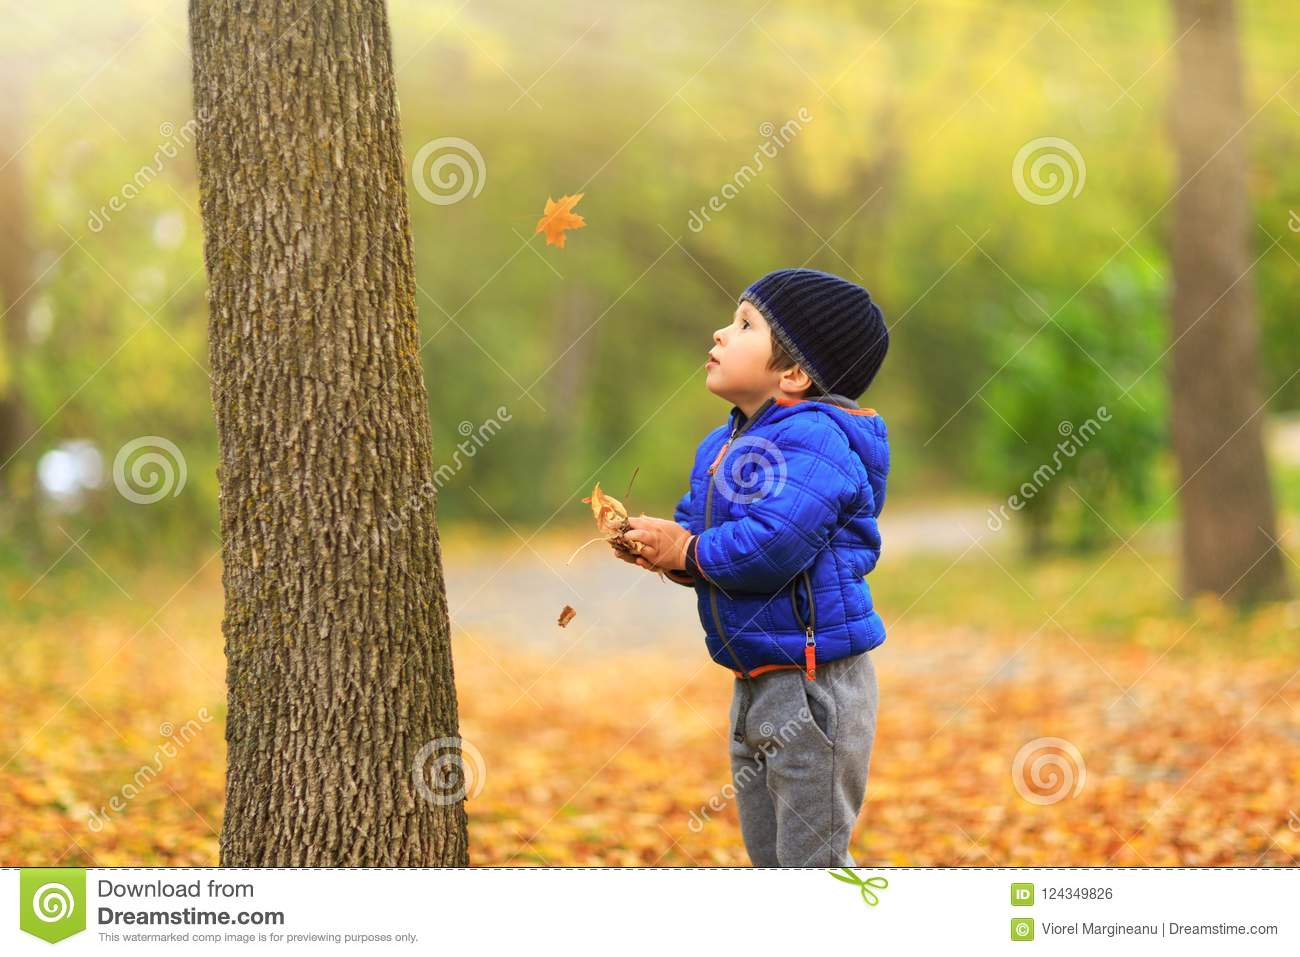 Lovely child catches the maple leaves in the fall during autumn